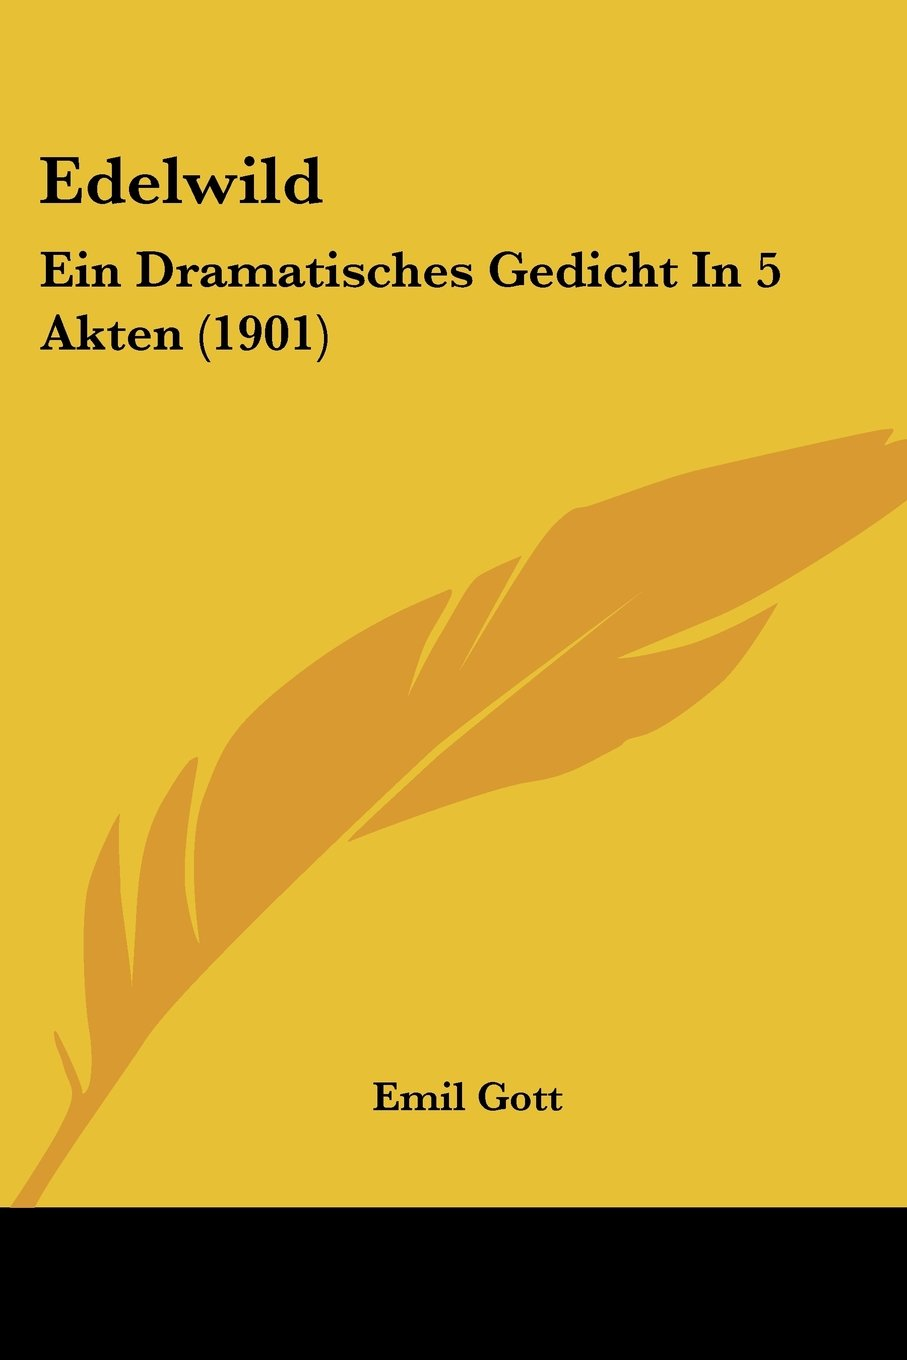 Read Online Edelwild: Ein Dramatisches Gedicht In 5 Akten (1901) (German Edition) ebook